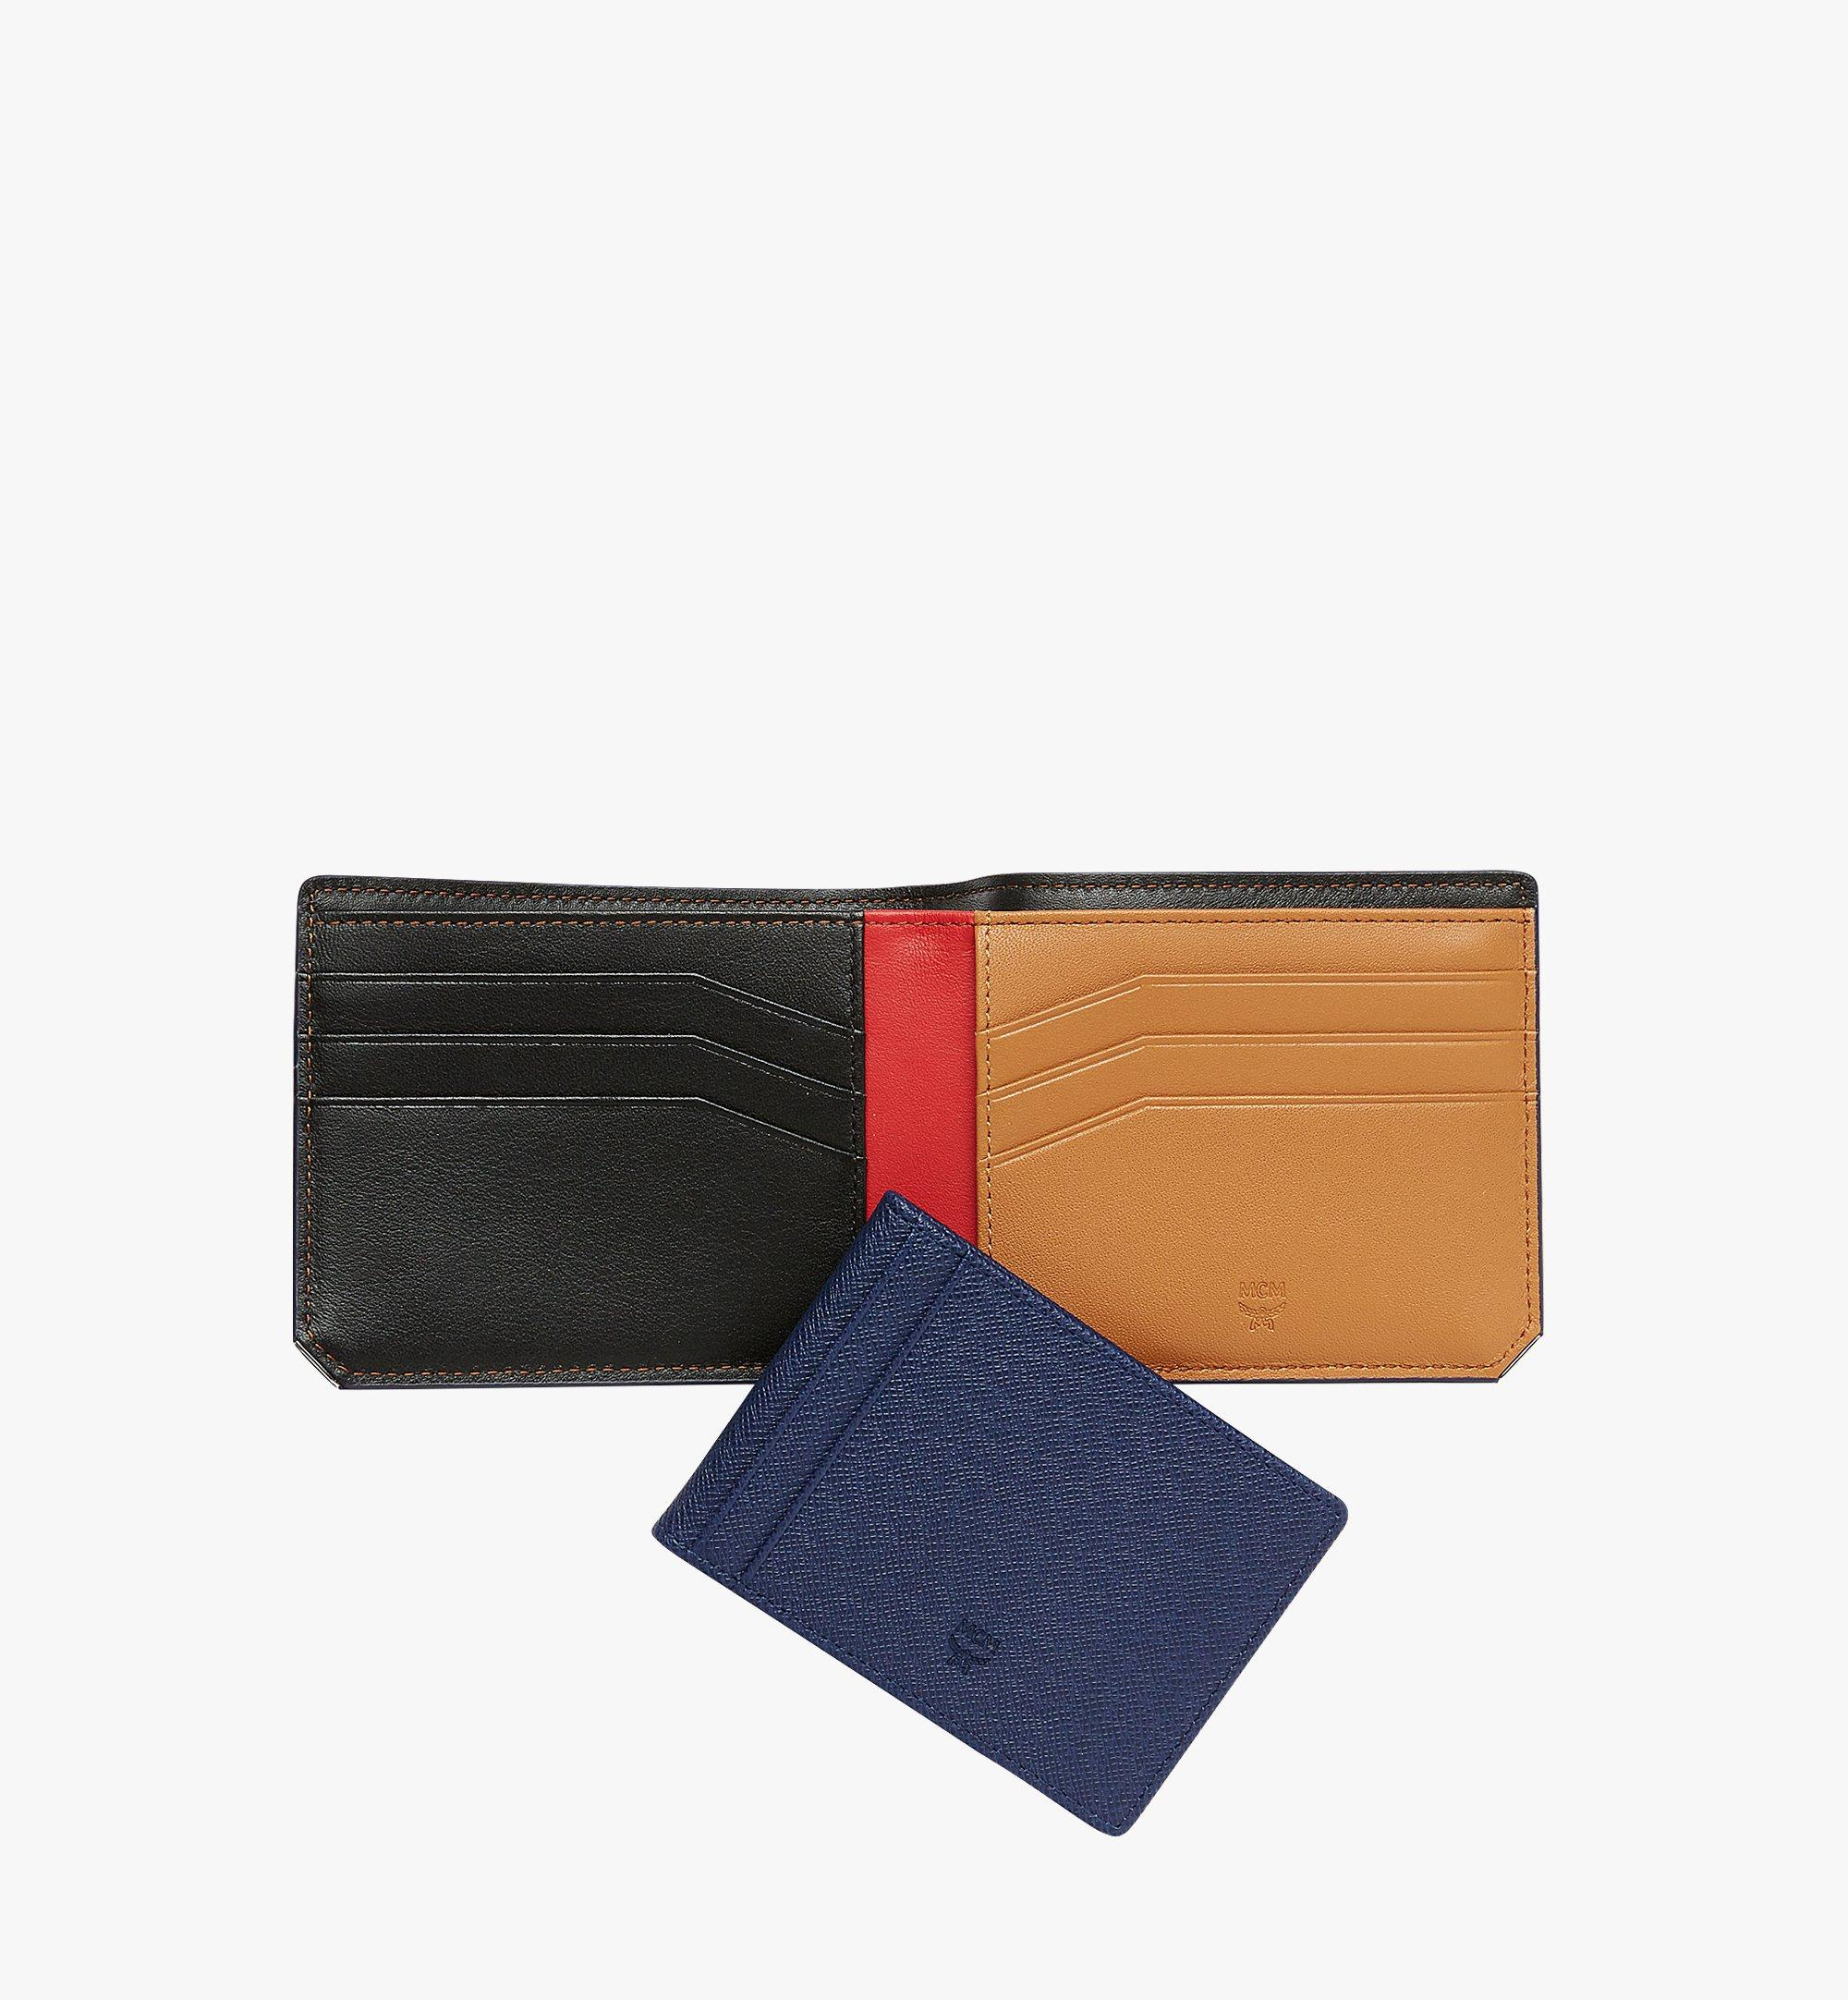 MCM New Bric Bifold with Card Case in Embossed Leather Navy MXS8ALL42VY001 Alternate View 4